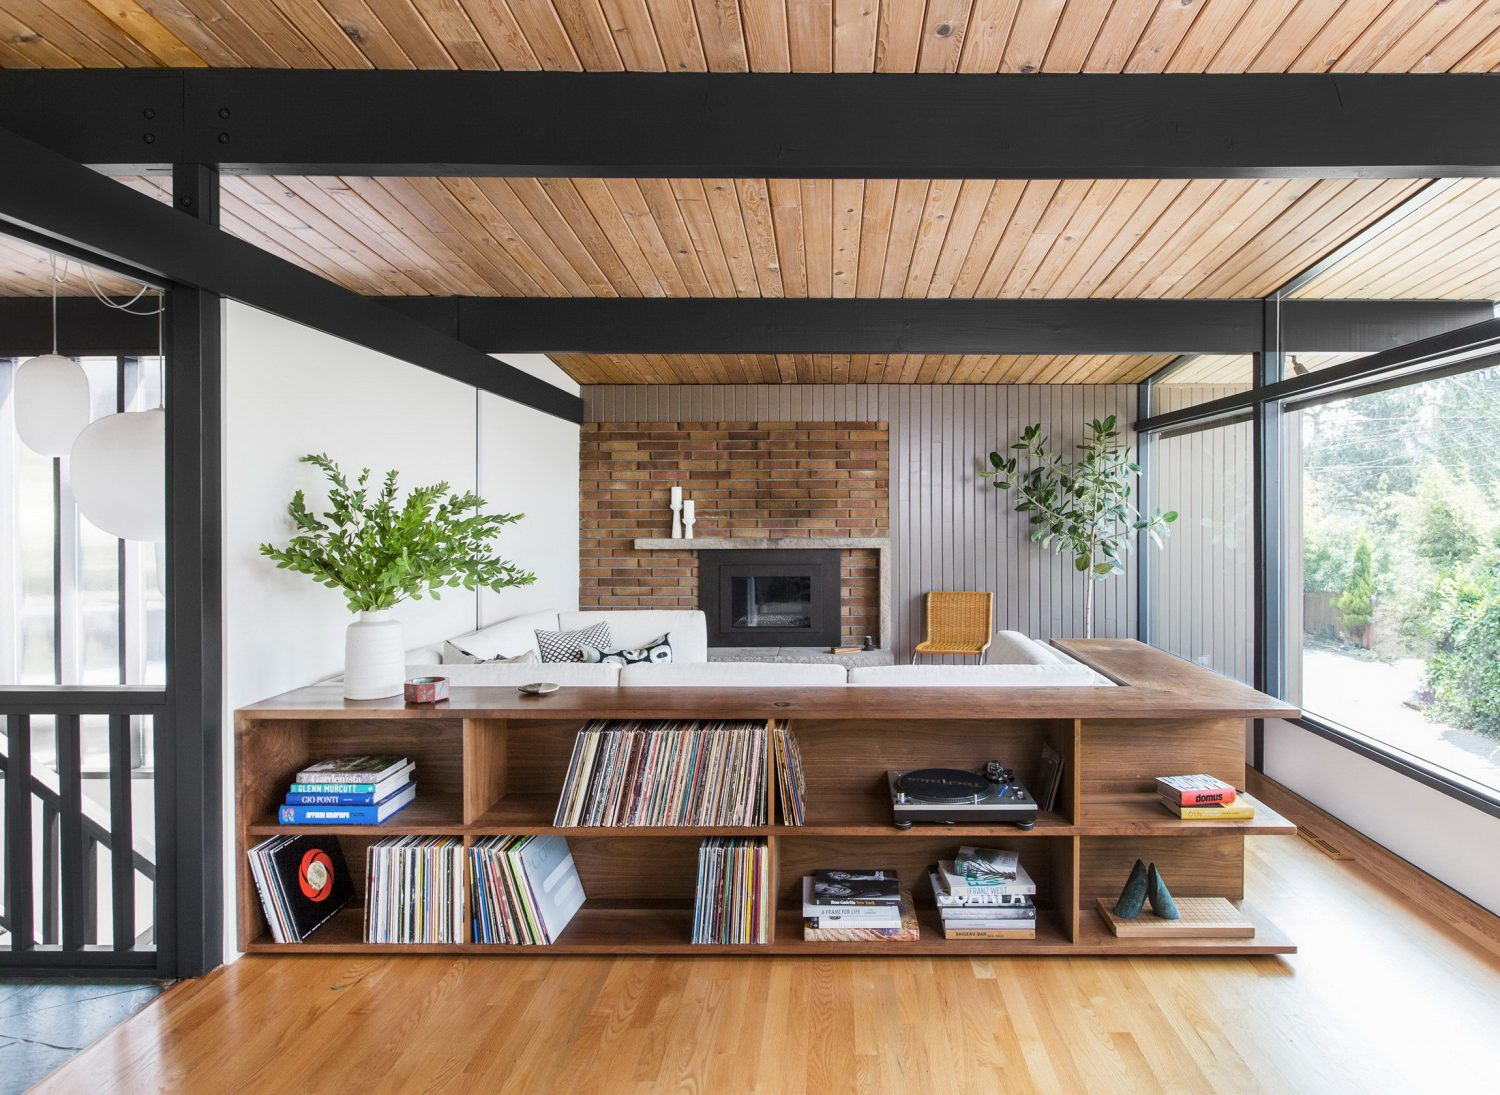 Hillside Midcentury | Mid-Century Modern Home Renovation by SHED